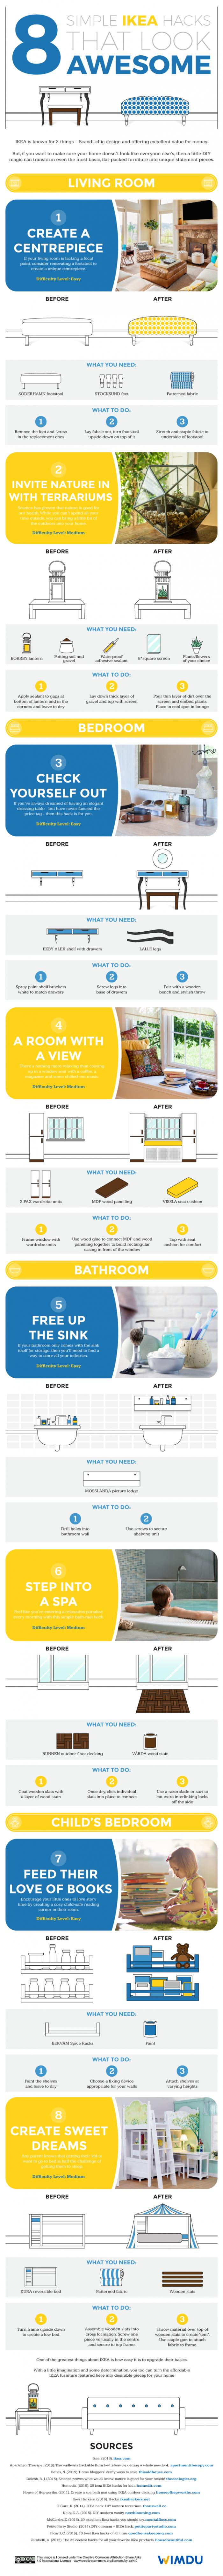 8-simple-ikea-hacks-that-look-awesome